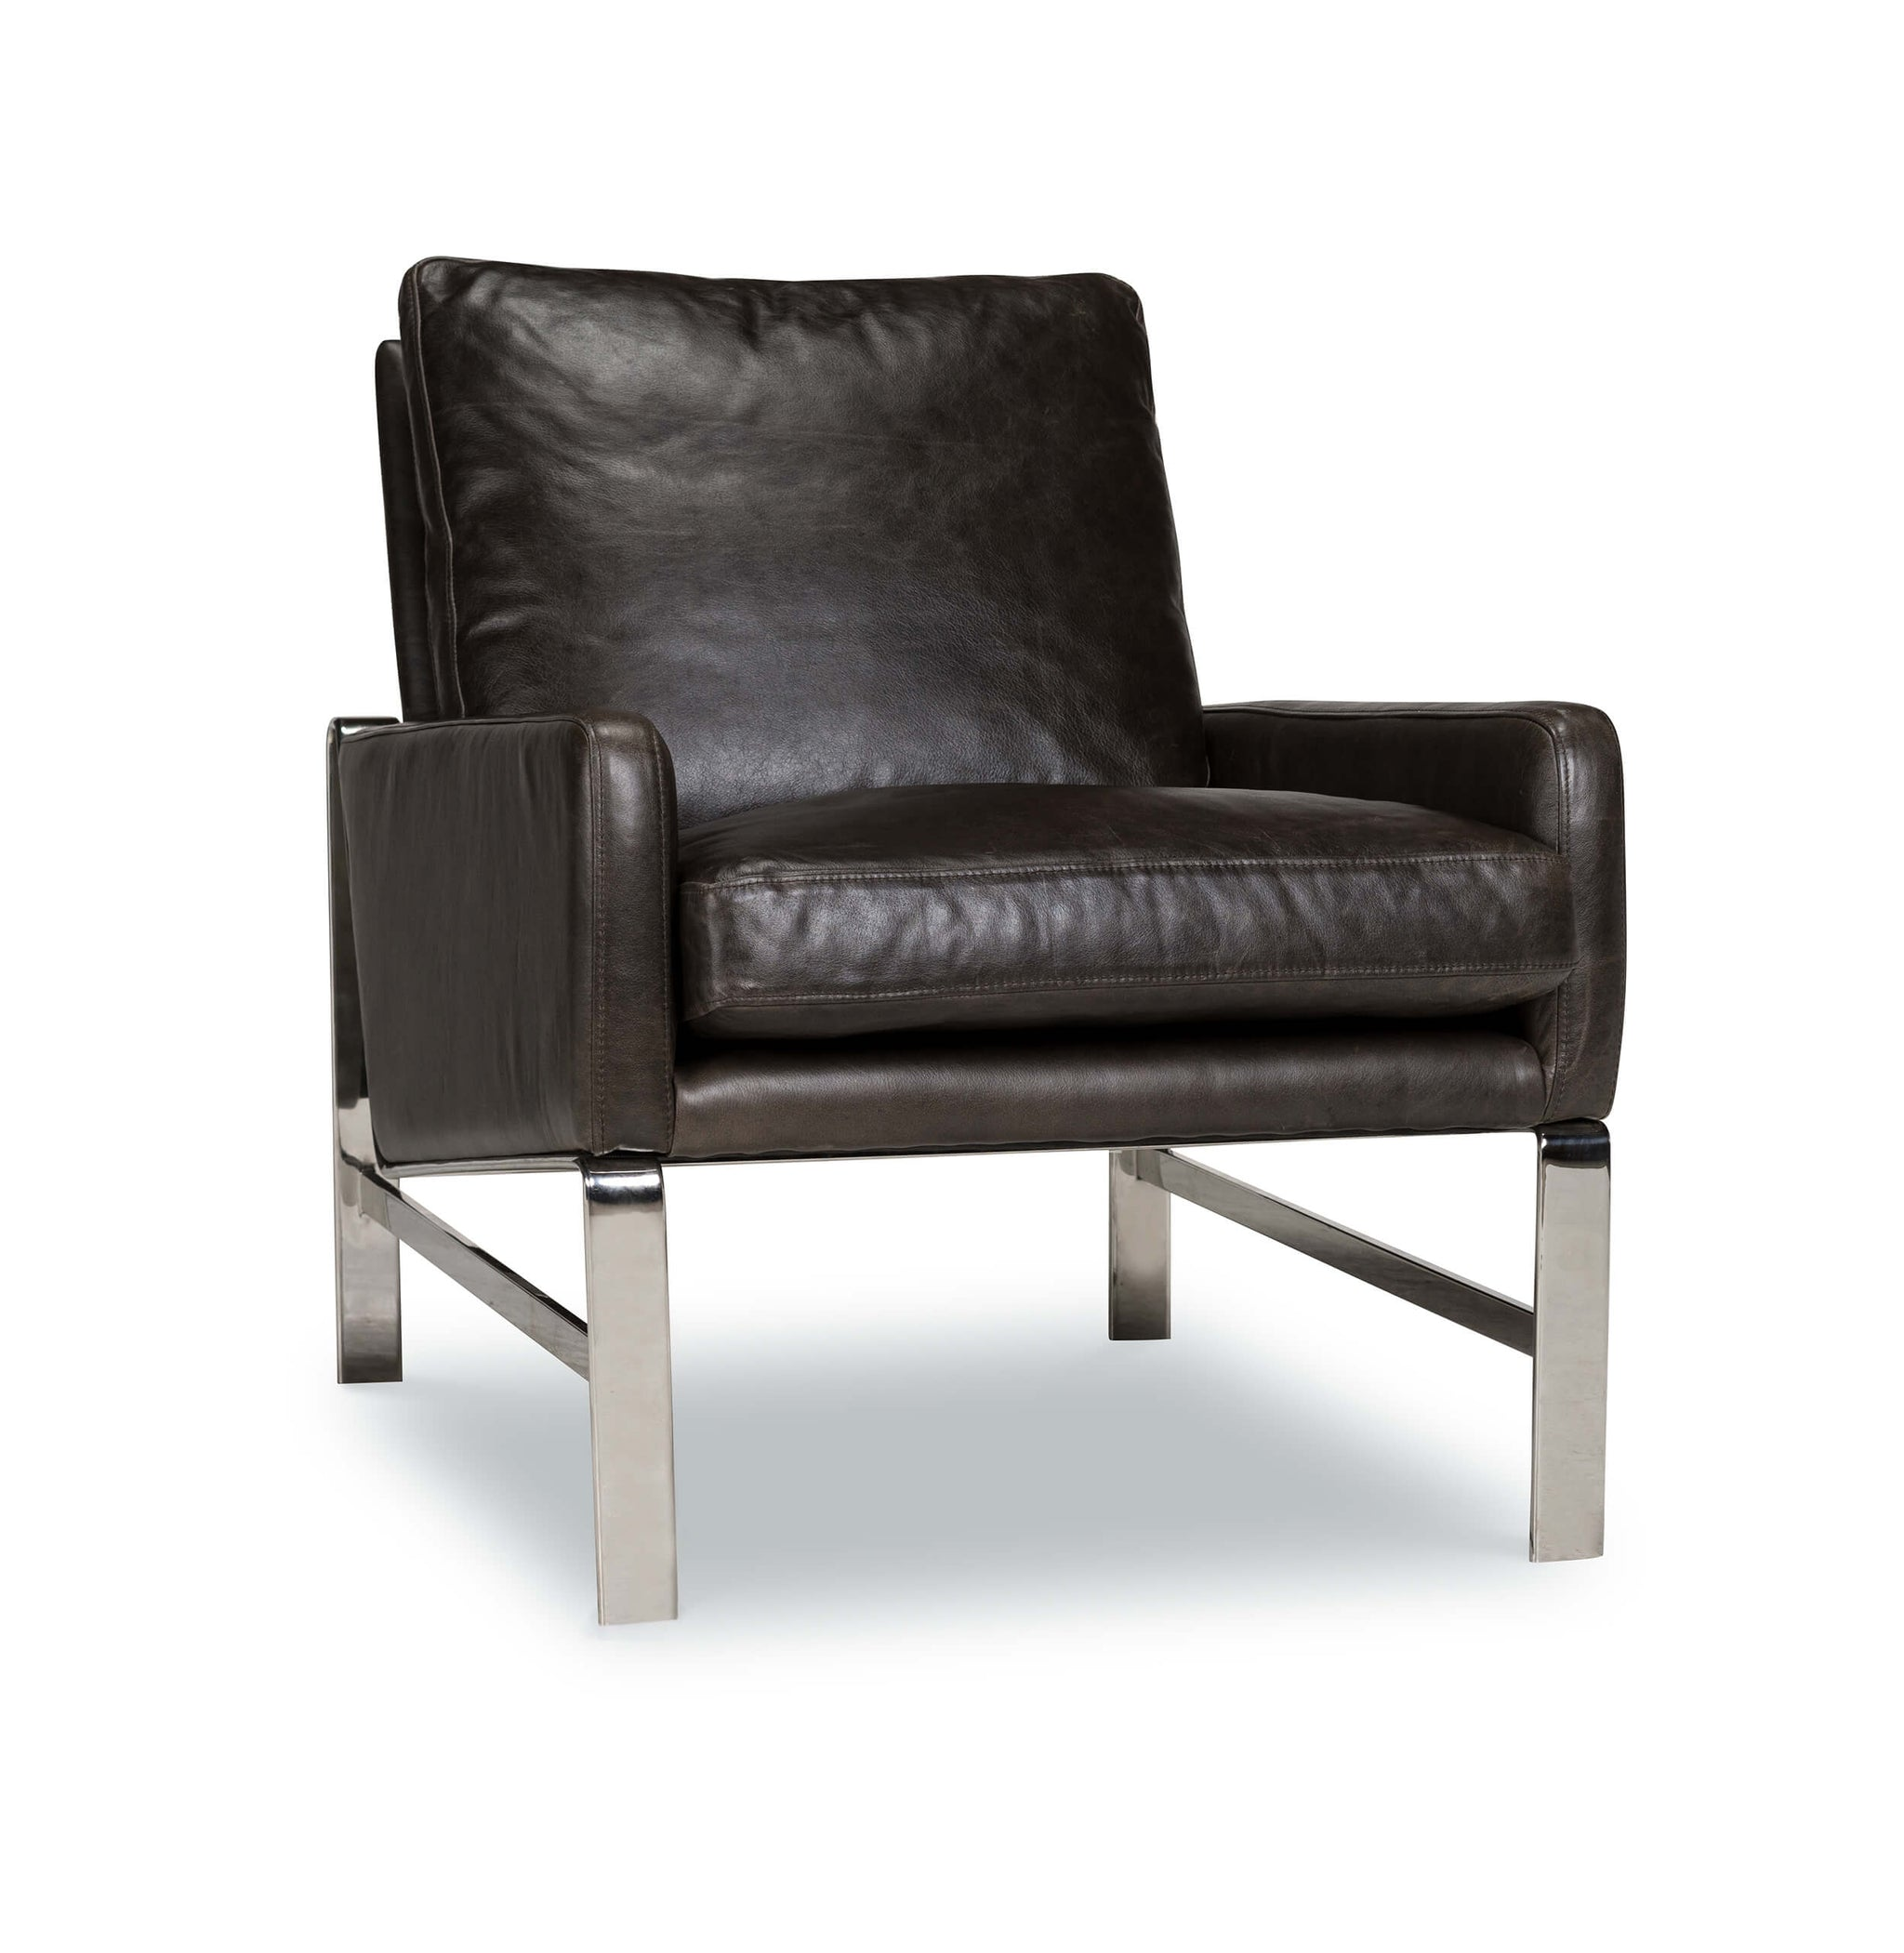 Opulence-Home-Lucas-Leather-Chair-Shalimar-Grigio-483-